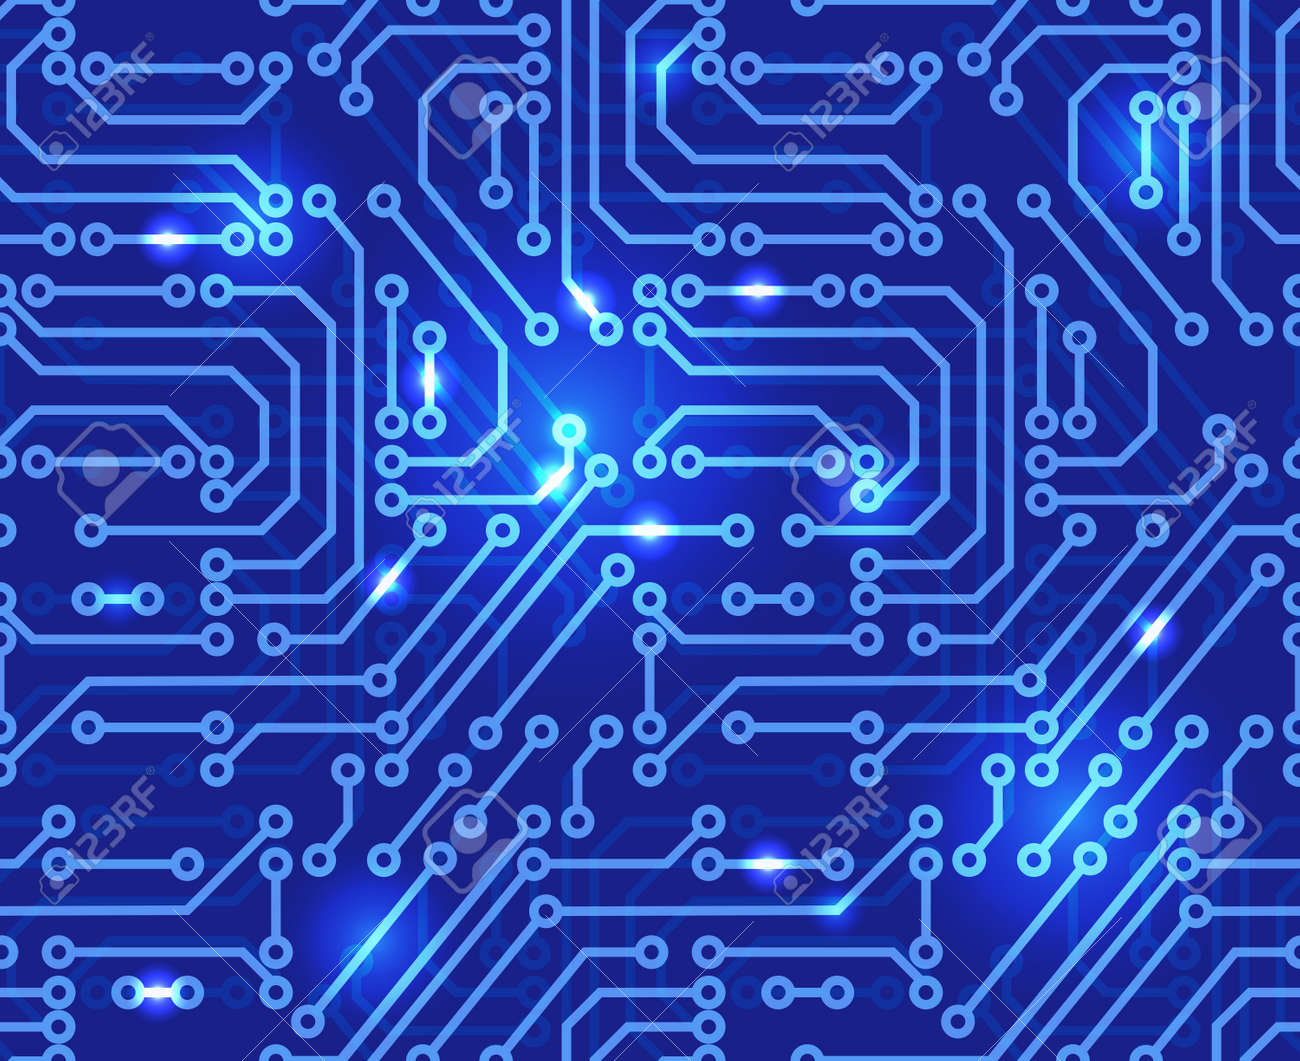 Circuit board background illustration of abstract motherboard. Seamless pattern. - 57403027